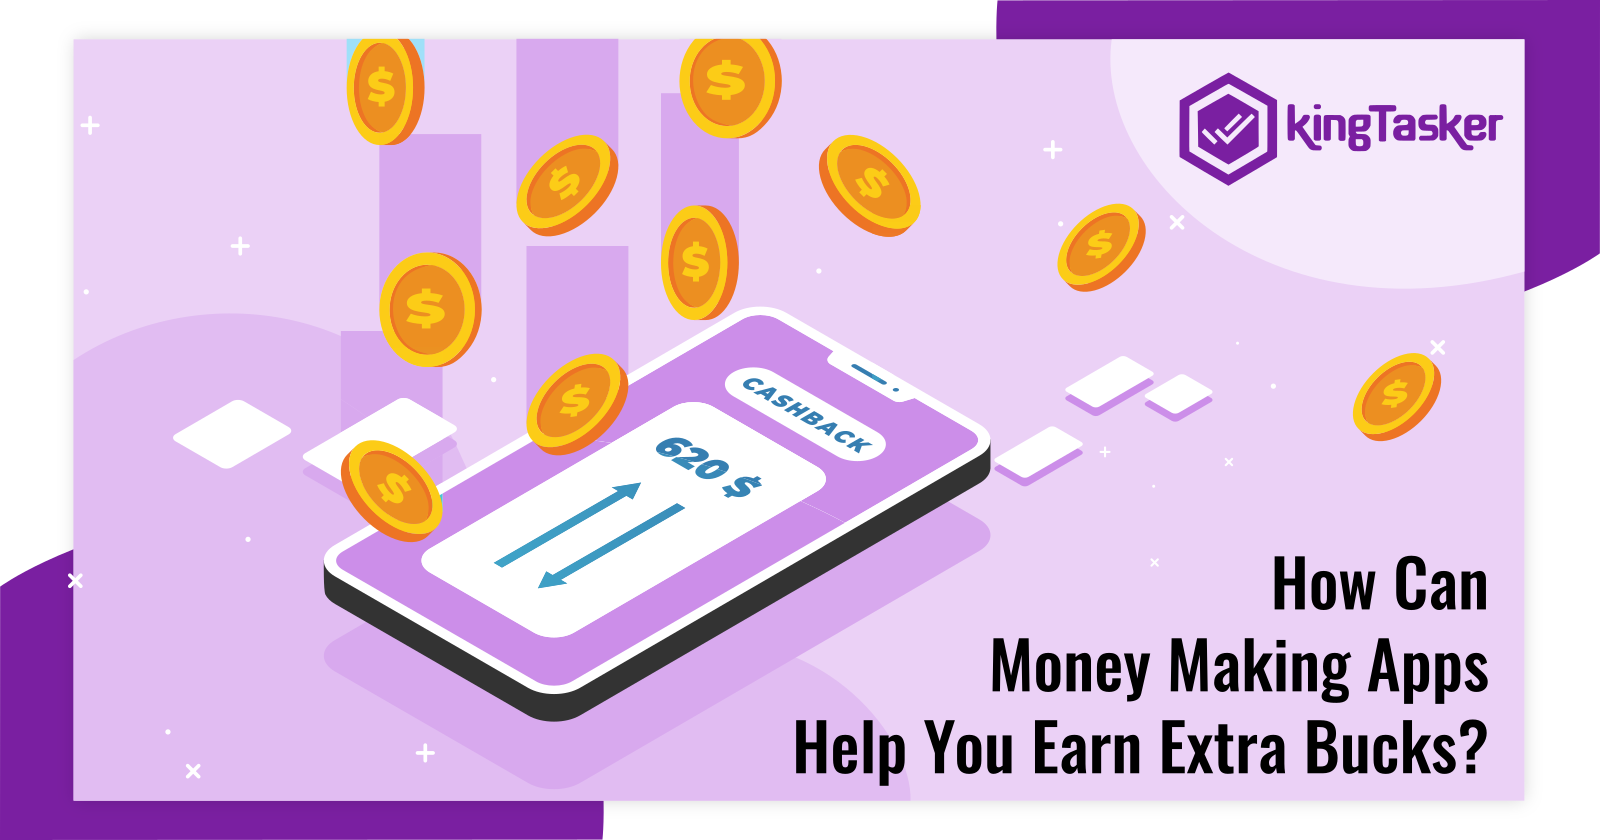 How Can Money Making Apps Help You Earn Extra Bucks?